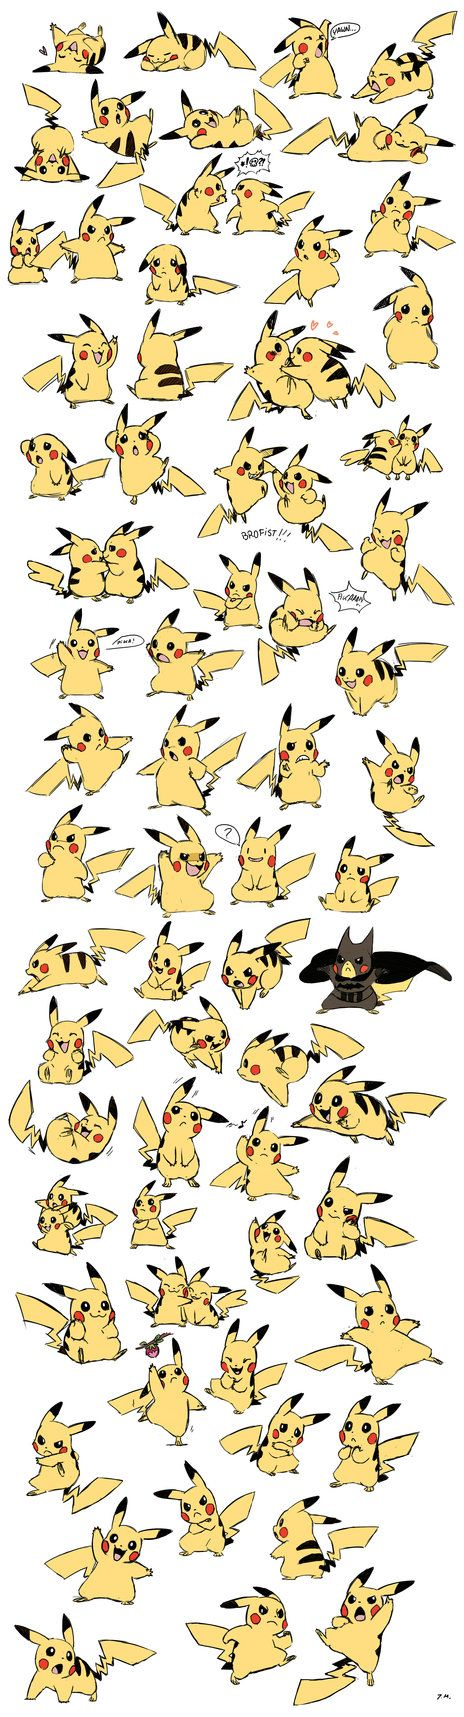 Pikachu Expressions/Poses by bluekomadori. Hahaha all the Pikachu you could possibly want! - Ander